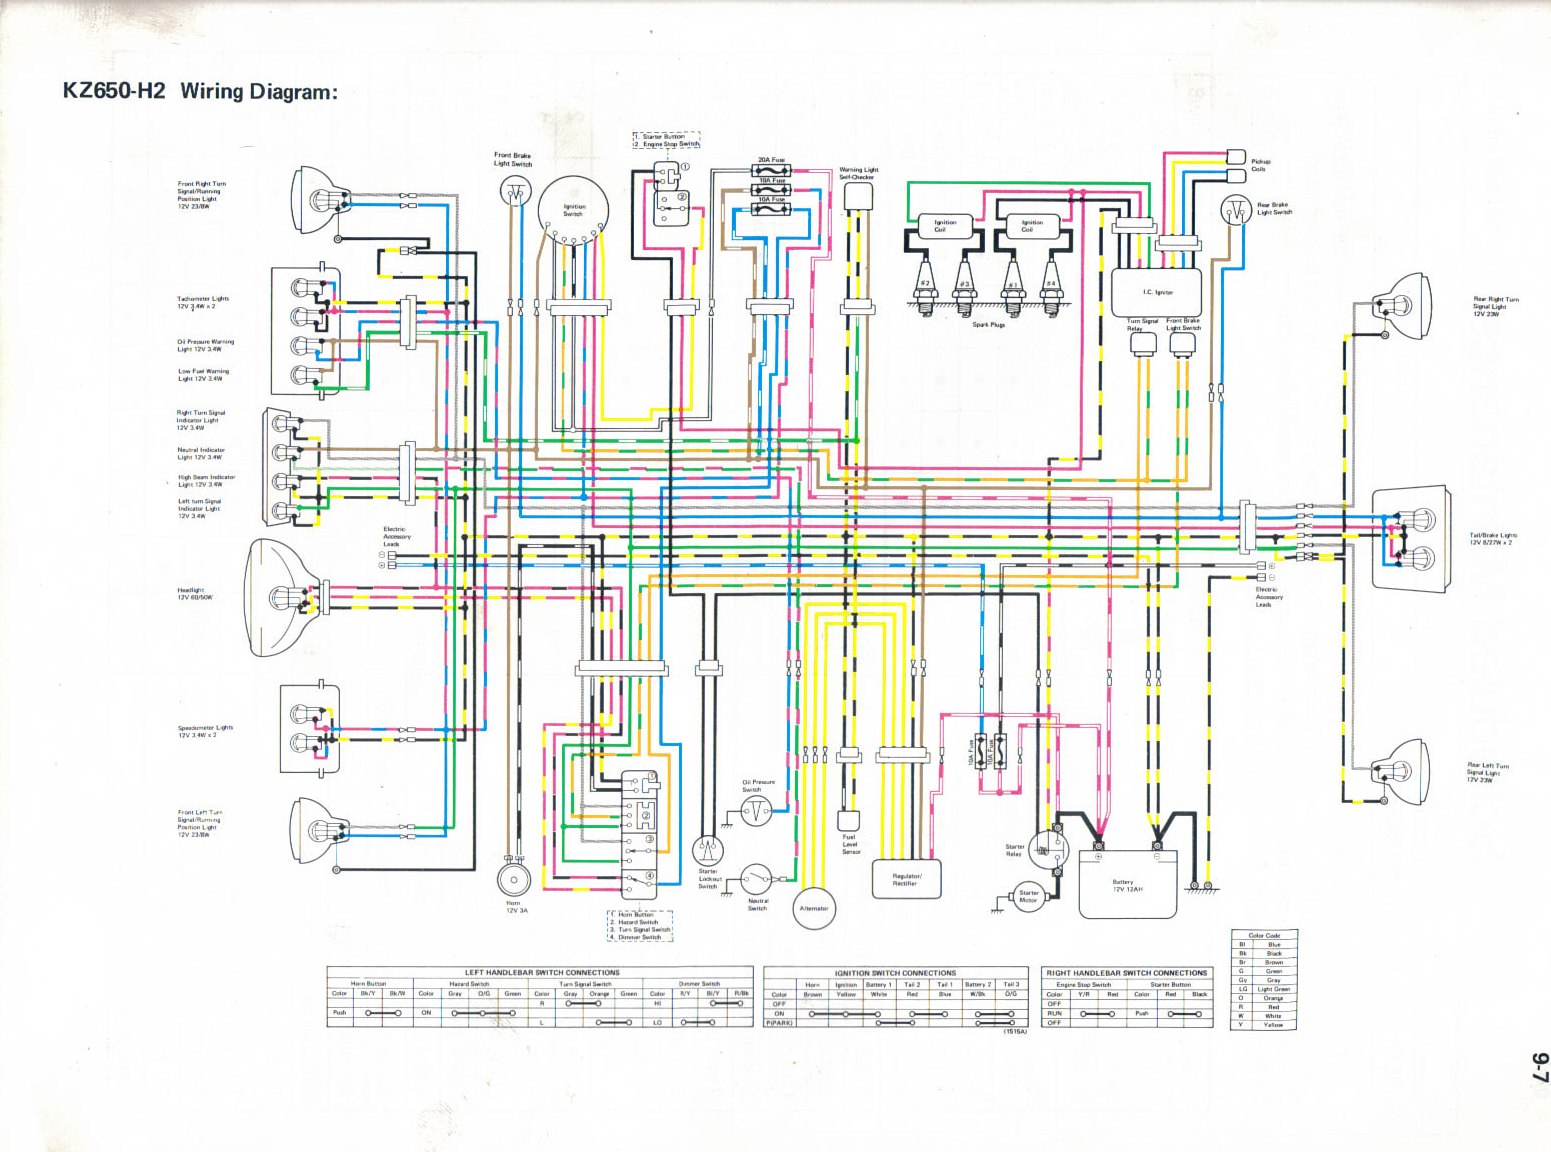 KZ650 H2 kawasaki h2 wiring diagram kawasaki wiring diagrams instruction ex500 wiring diagram at mifinder.co